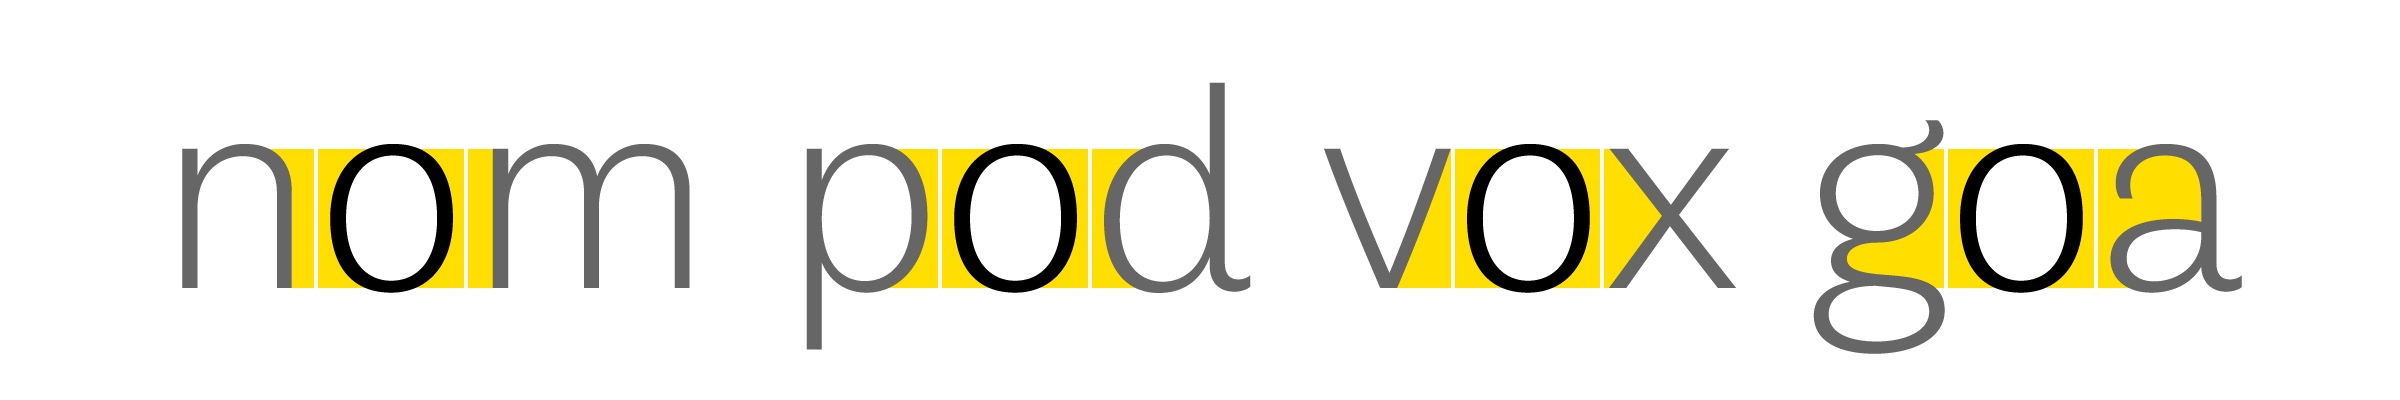 For any space next to a character, only half of it is defined by the character itself and the other half belongs to the preceding or the following character. As you can see in this example showing a number of possibilities for the 'o', this creates whites of wildly varying shapes (here in yellow). For the purpose of this visual the kerning was disabled.